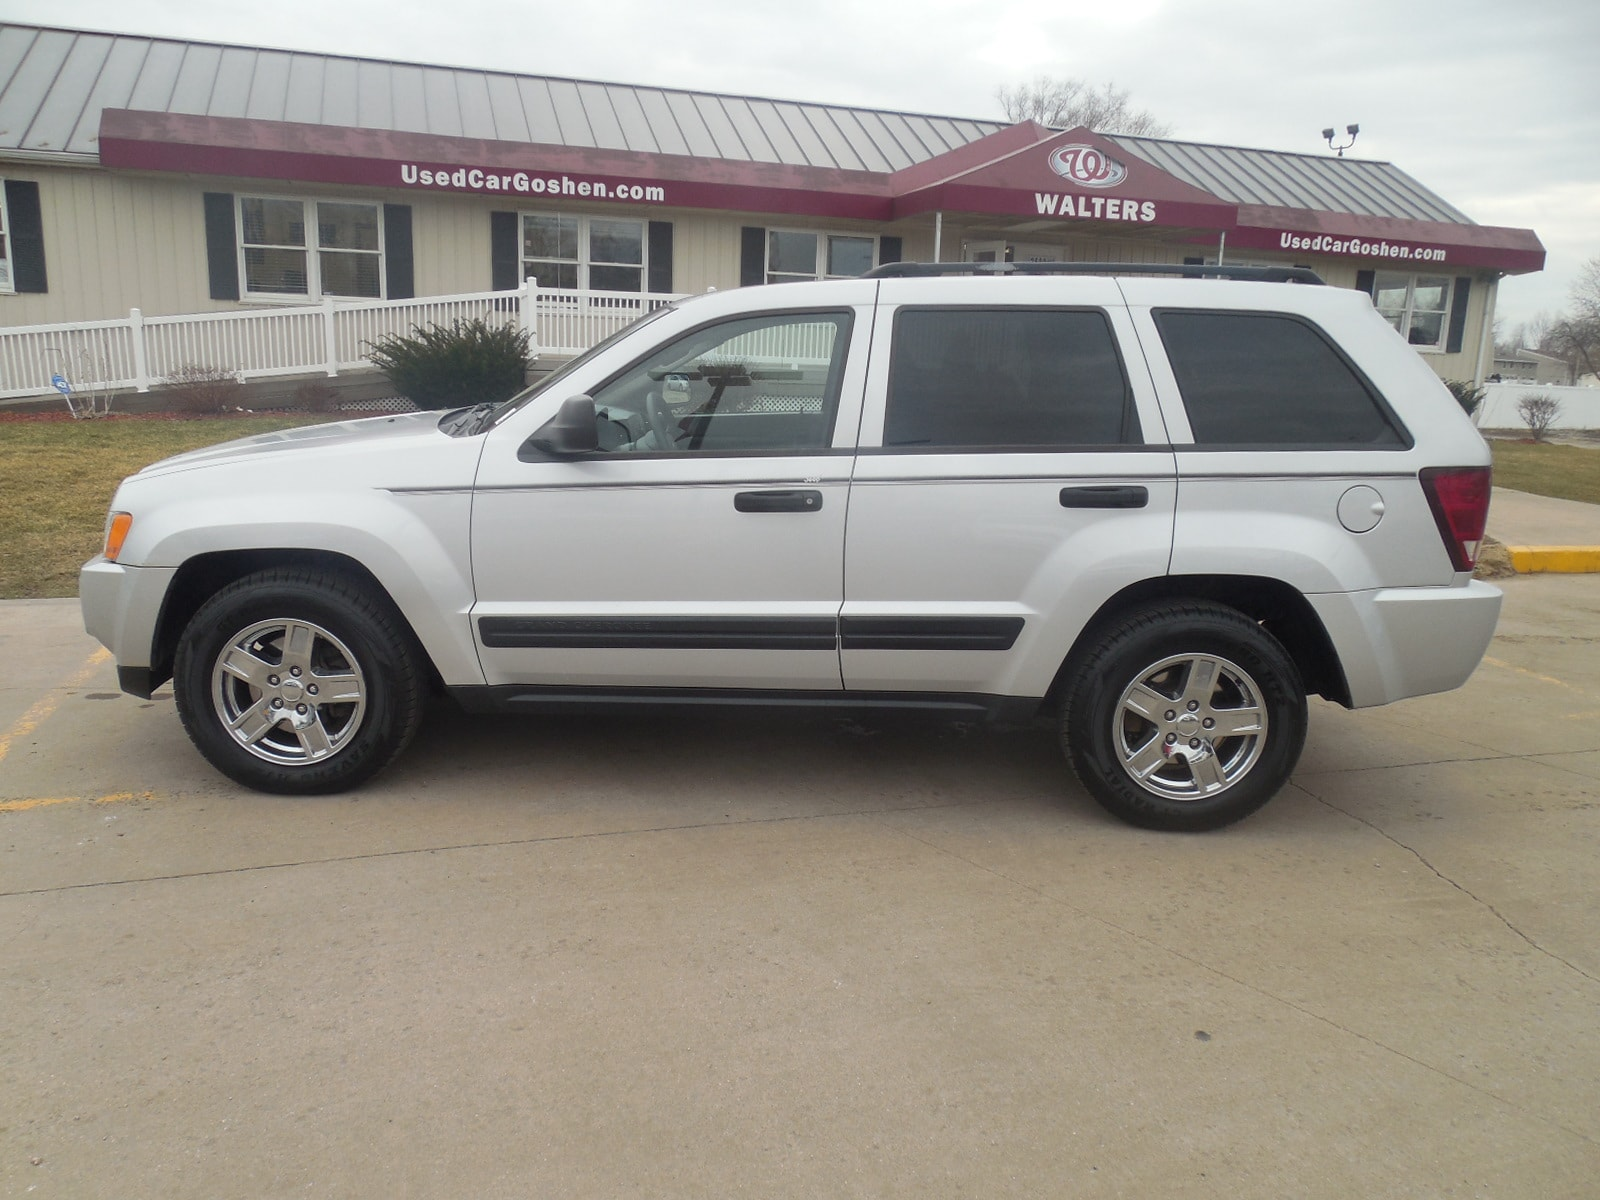 used 2005 jeep grand cherokee for sale goshen in elkhart south bend fort wayne indiana call. Black Bedroom Furniture Sets. Home Design Ideas